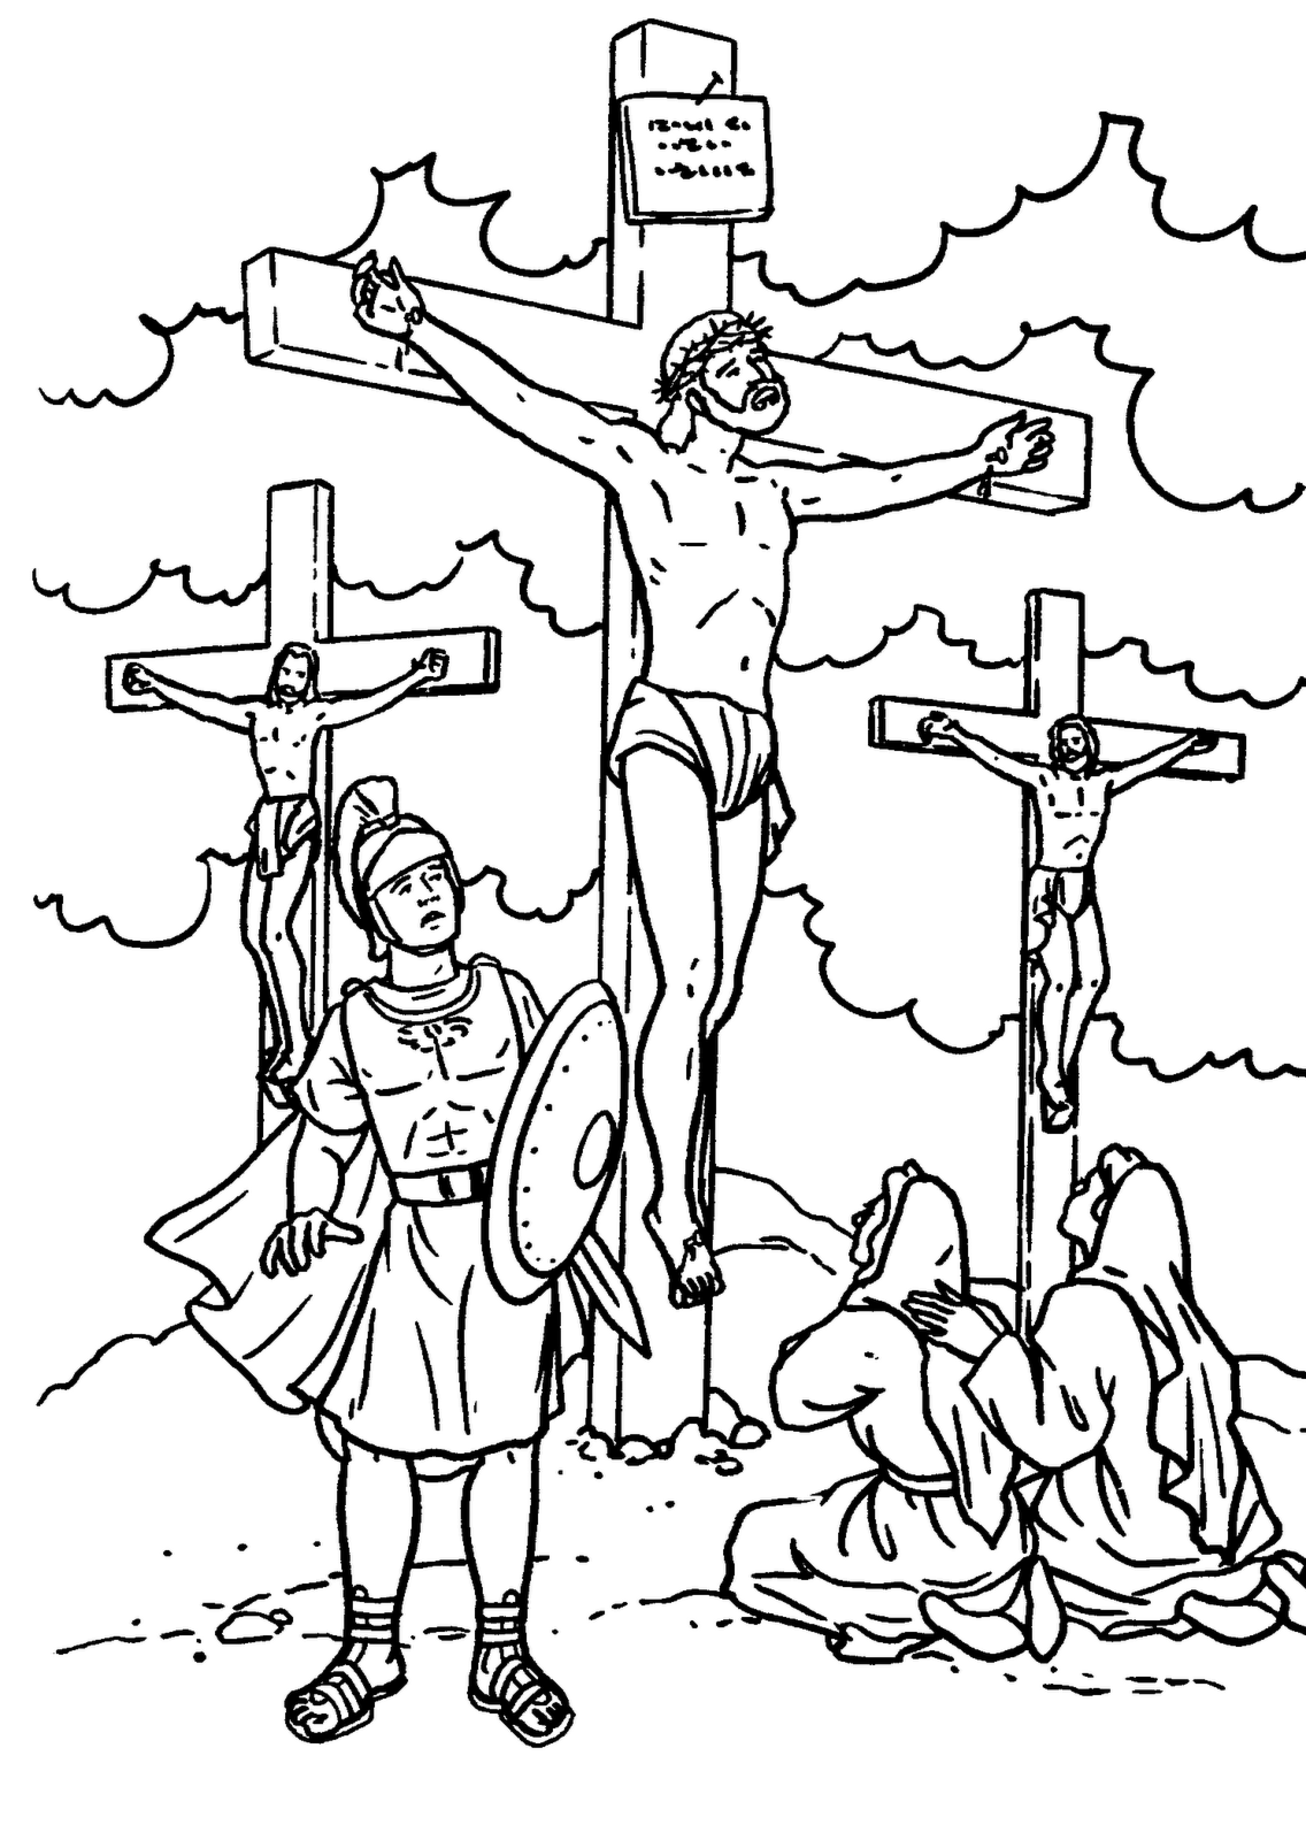 Jesus Crucified Drawing at GetDrawings.com | Free for personal use ...